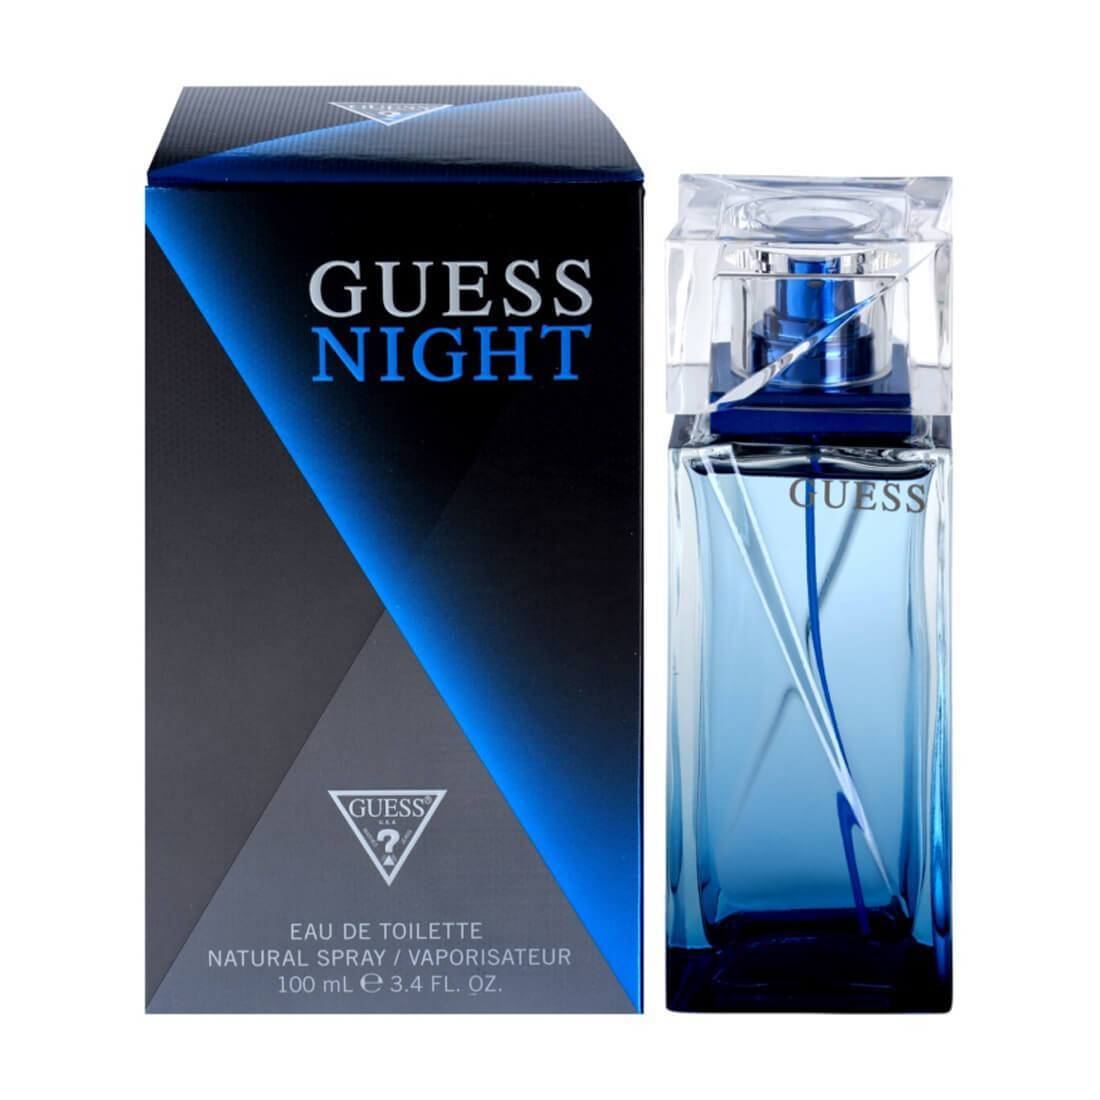 Guess Night Eau De Toilette For Men - 100ml